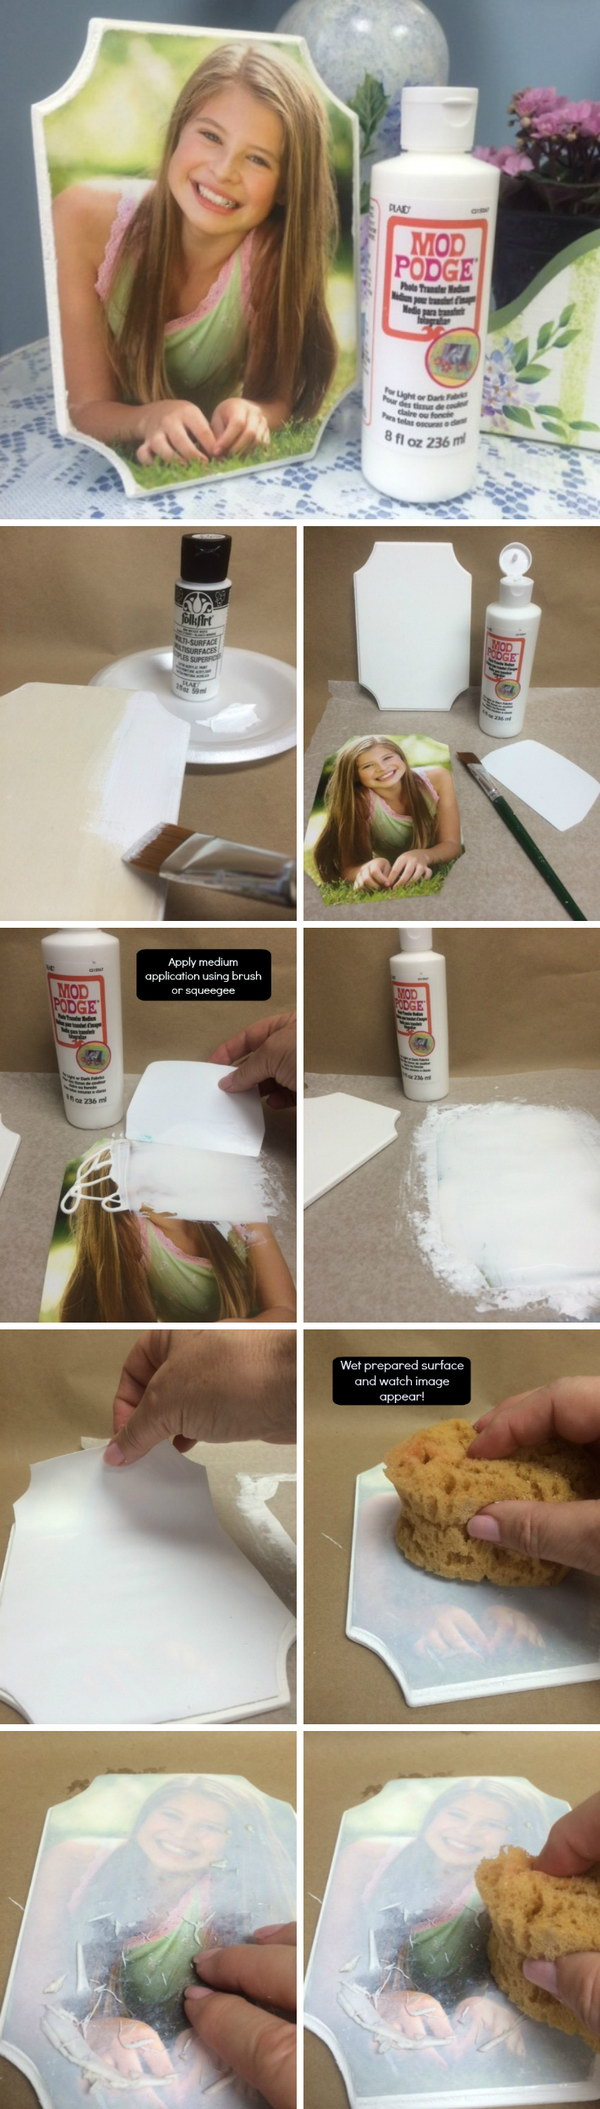 Use Mod Podge Photo Transfer Medium to Create a DIY Project.